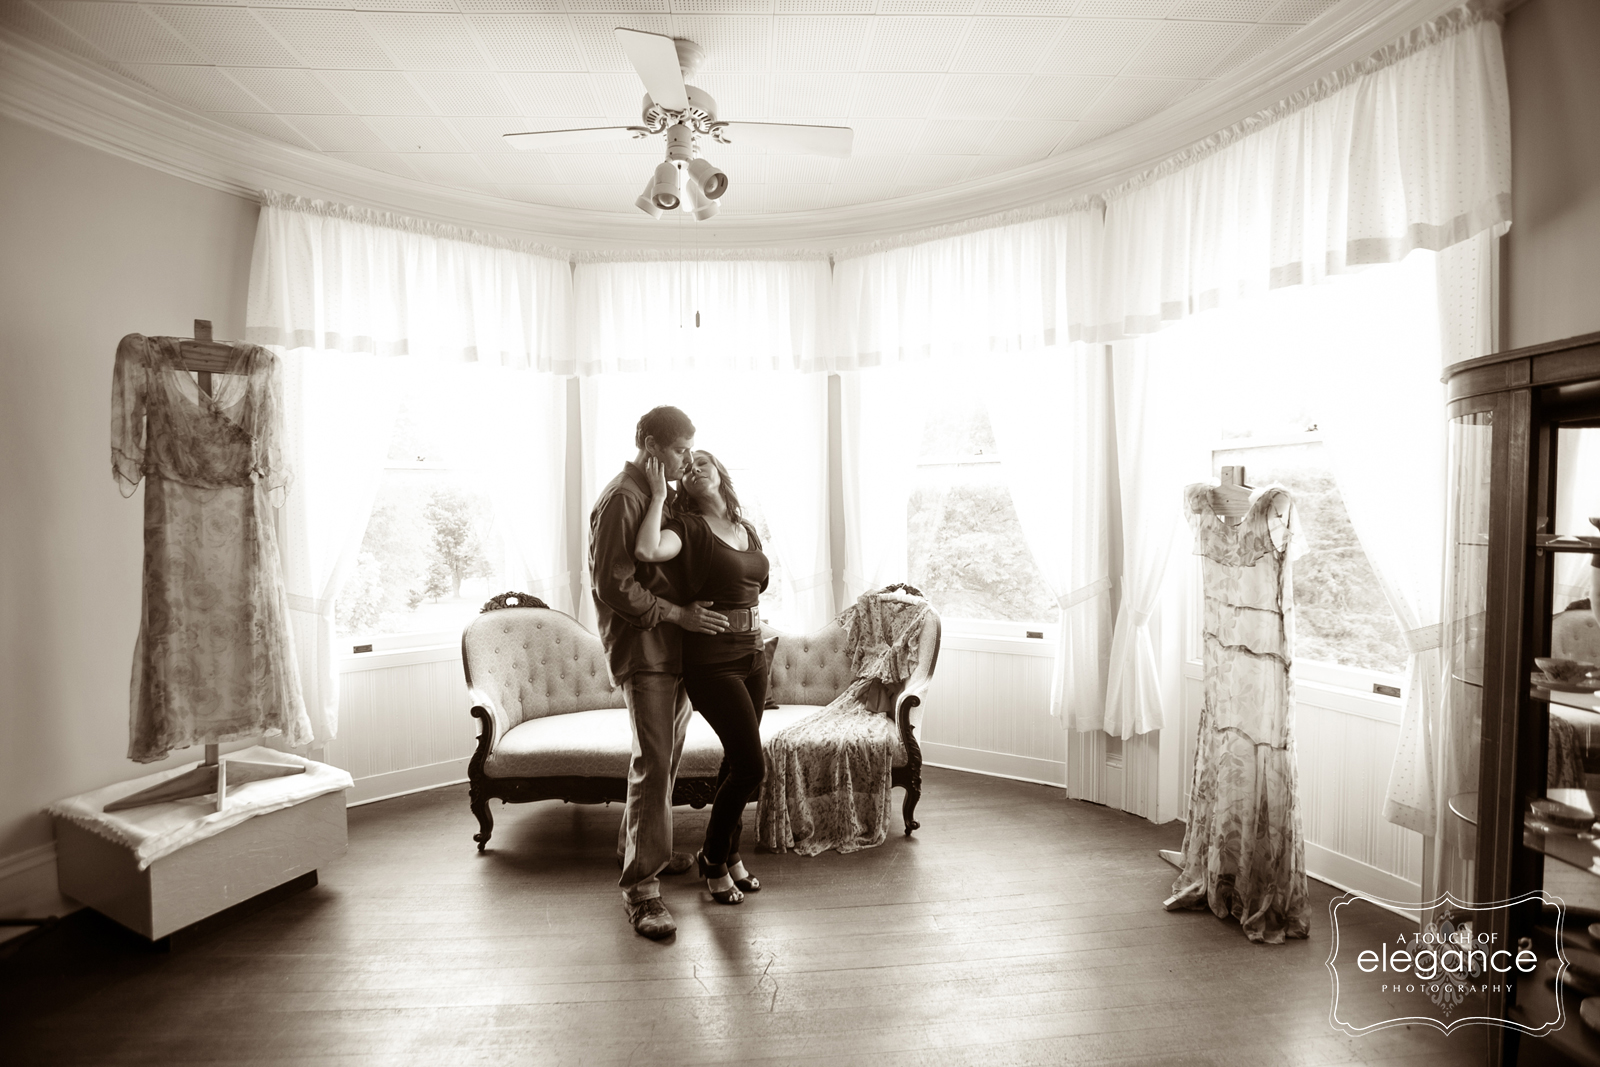 06-14-14-Michelle-and-Mike-74.jpg